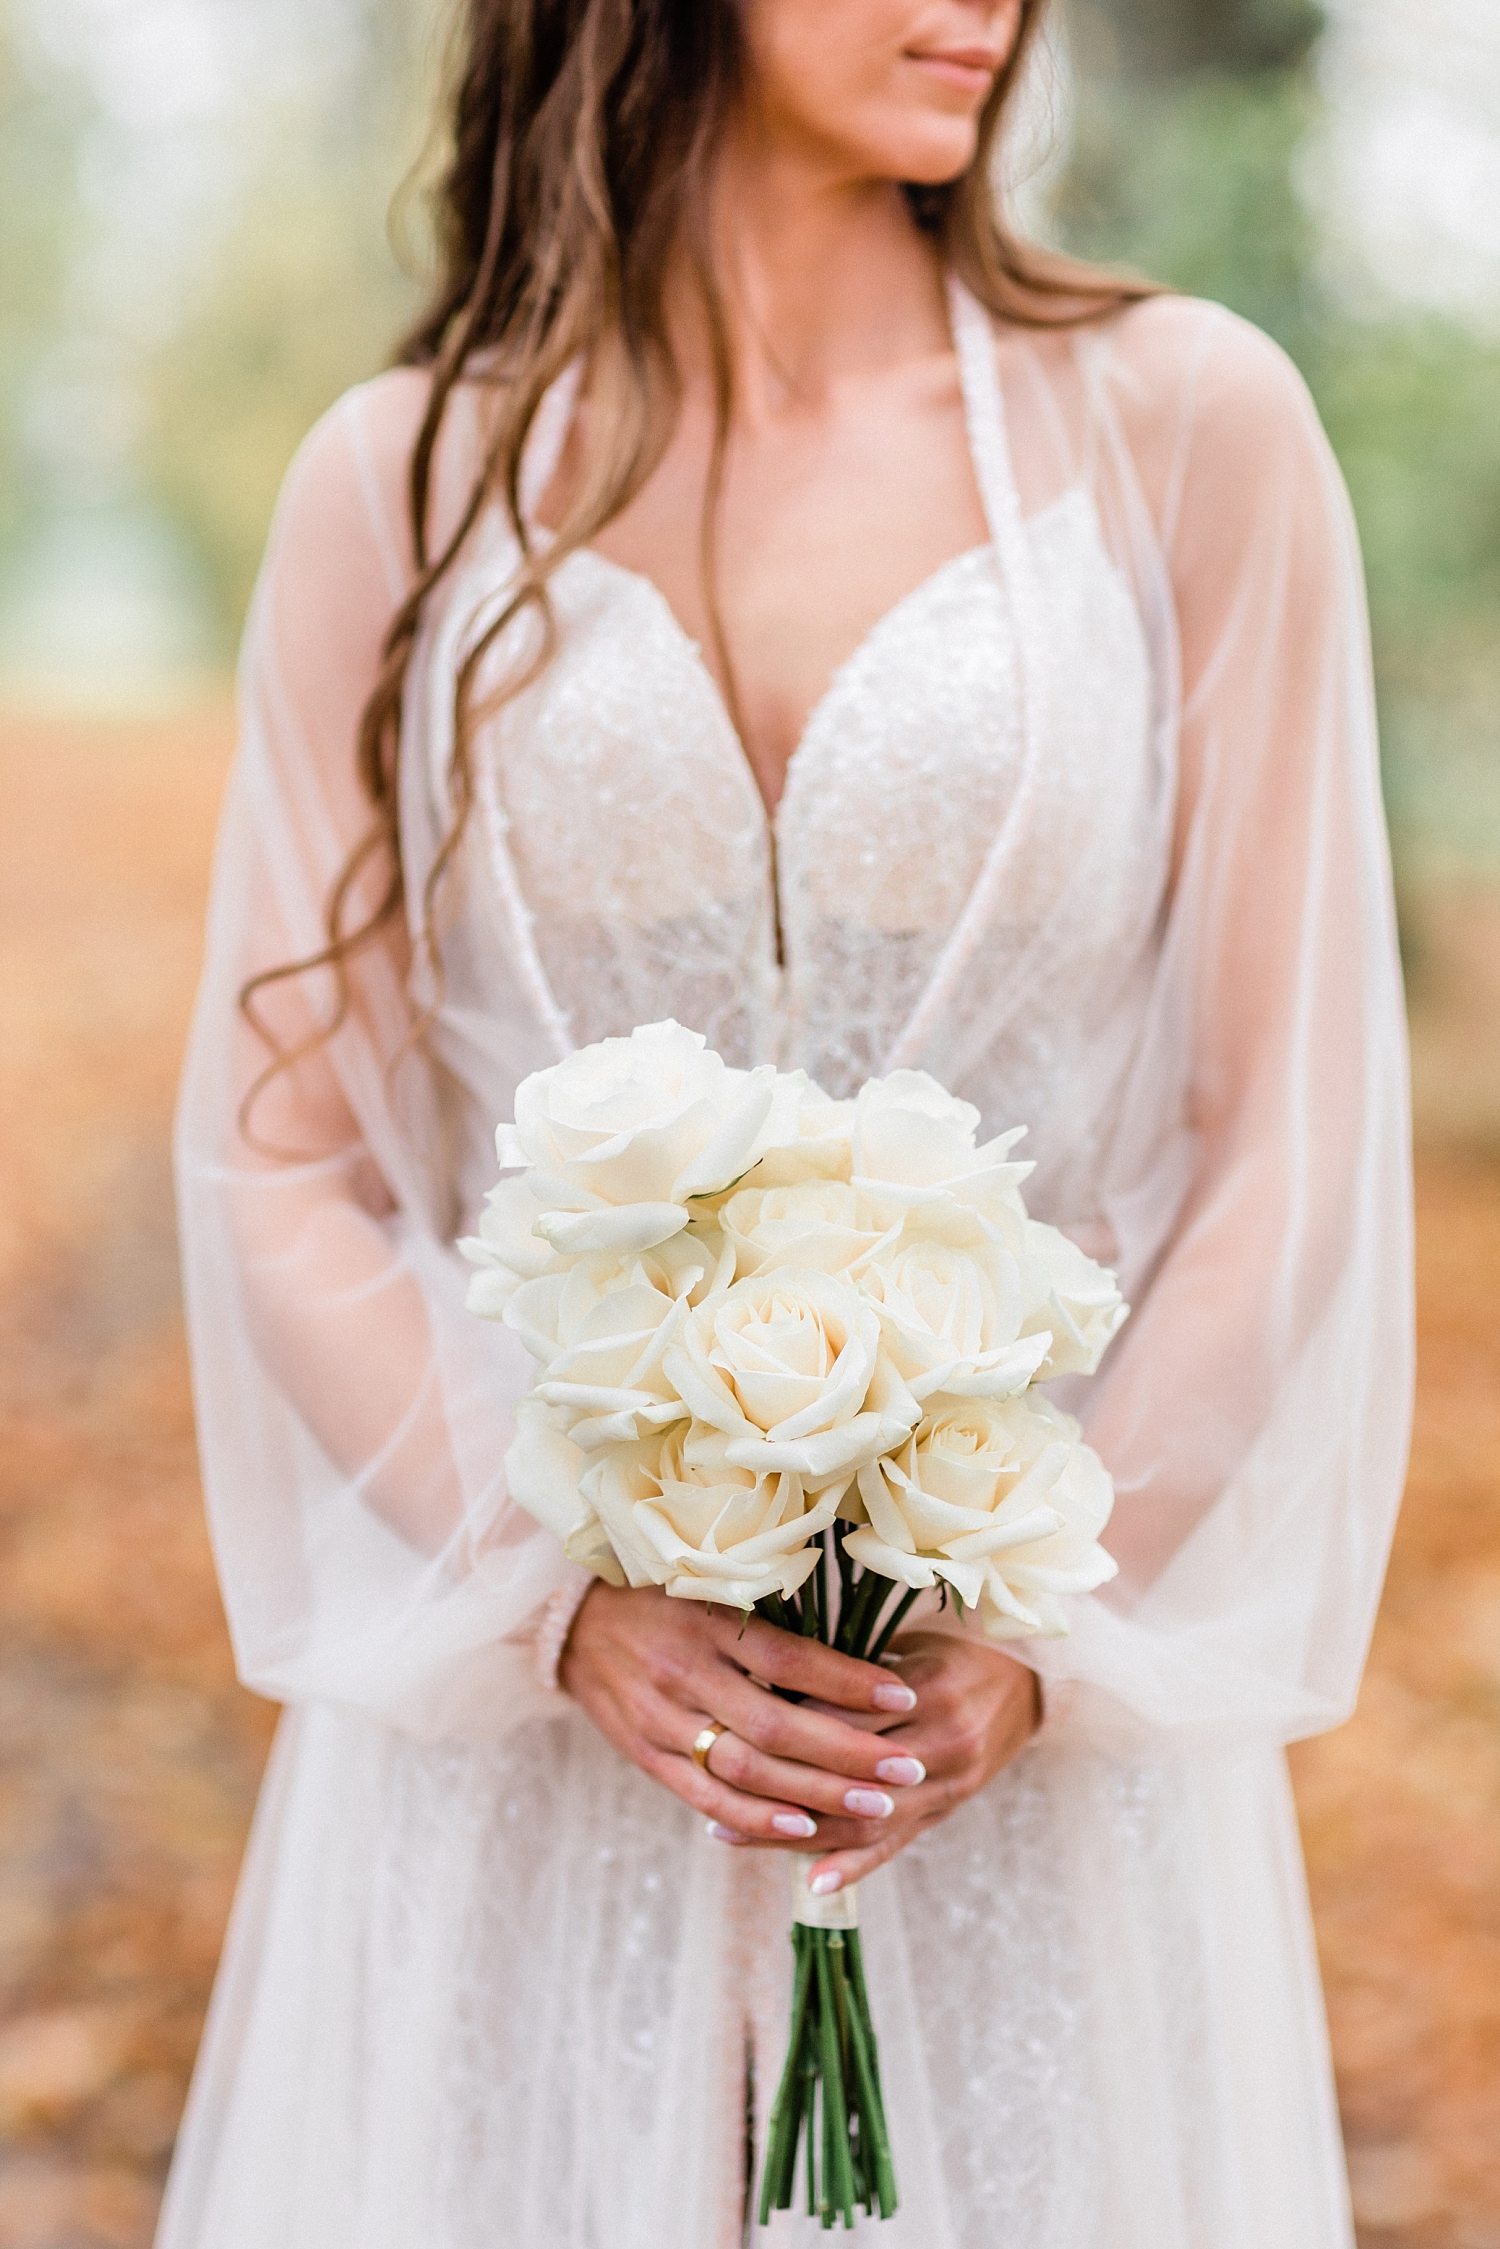 Bridal portrait with bouquet of white roses - photo by Jurgita Lukos Photography